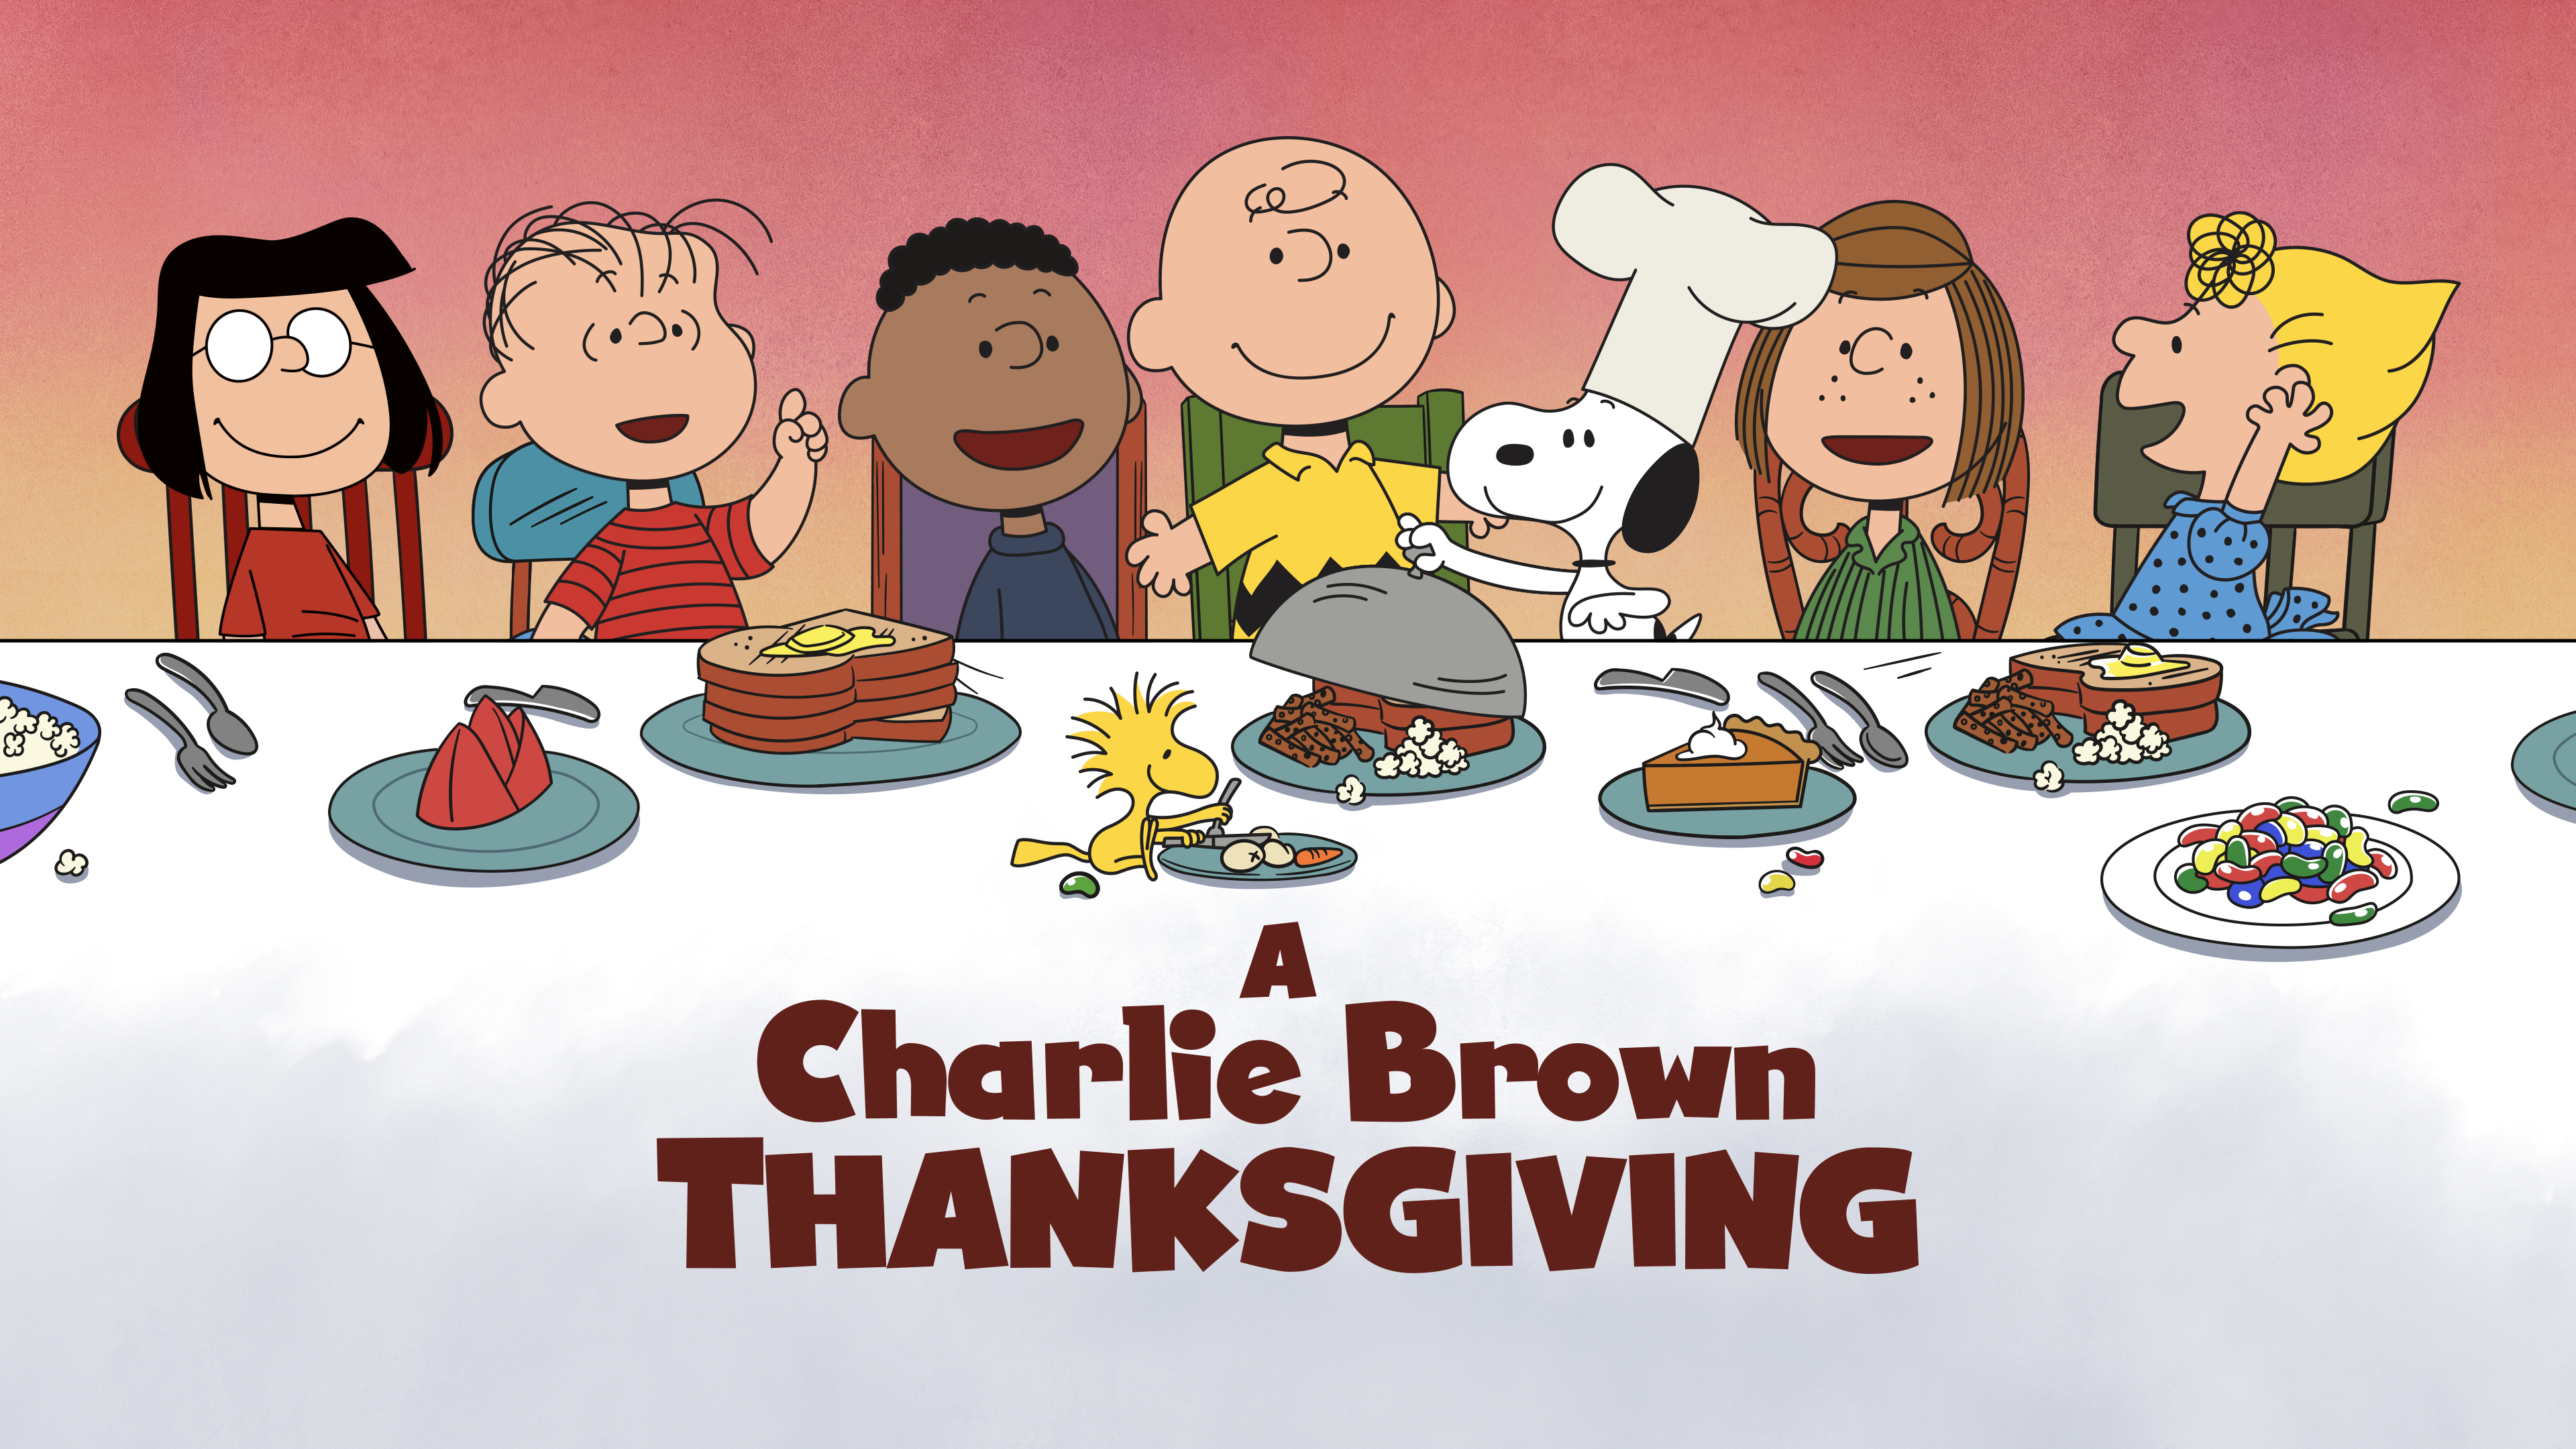 Charlie Brown and Peanuts cartoon characters with turkey